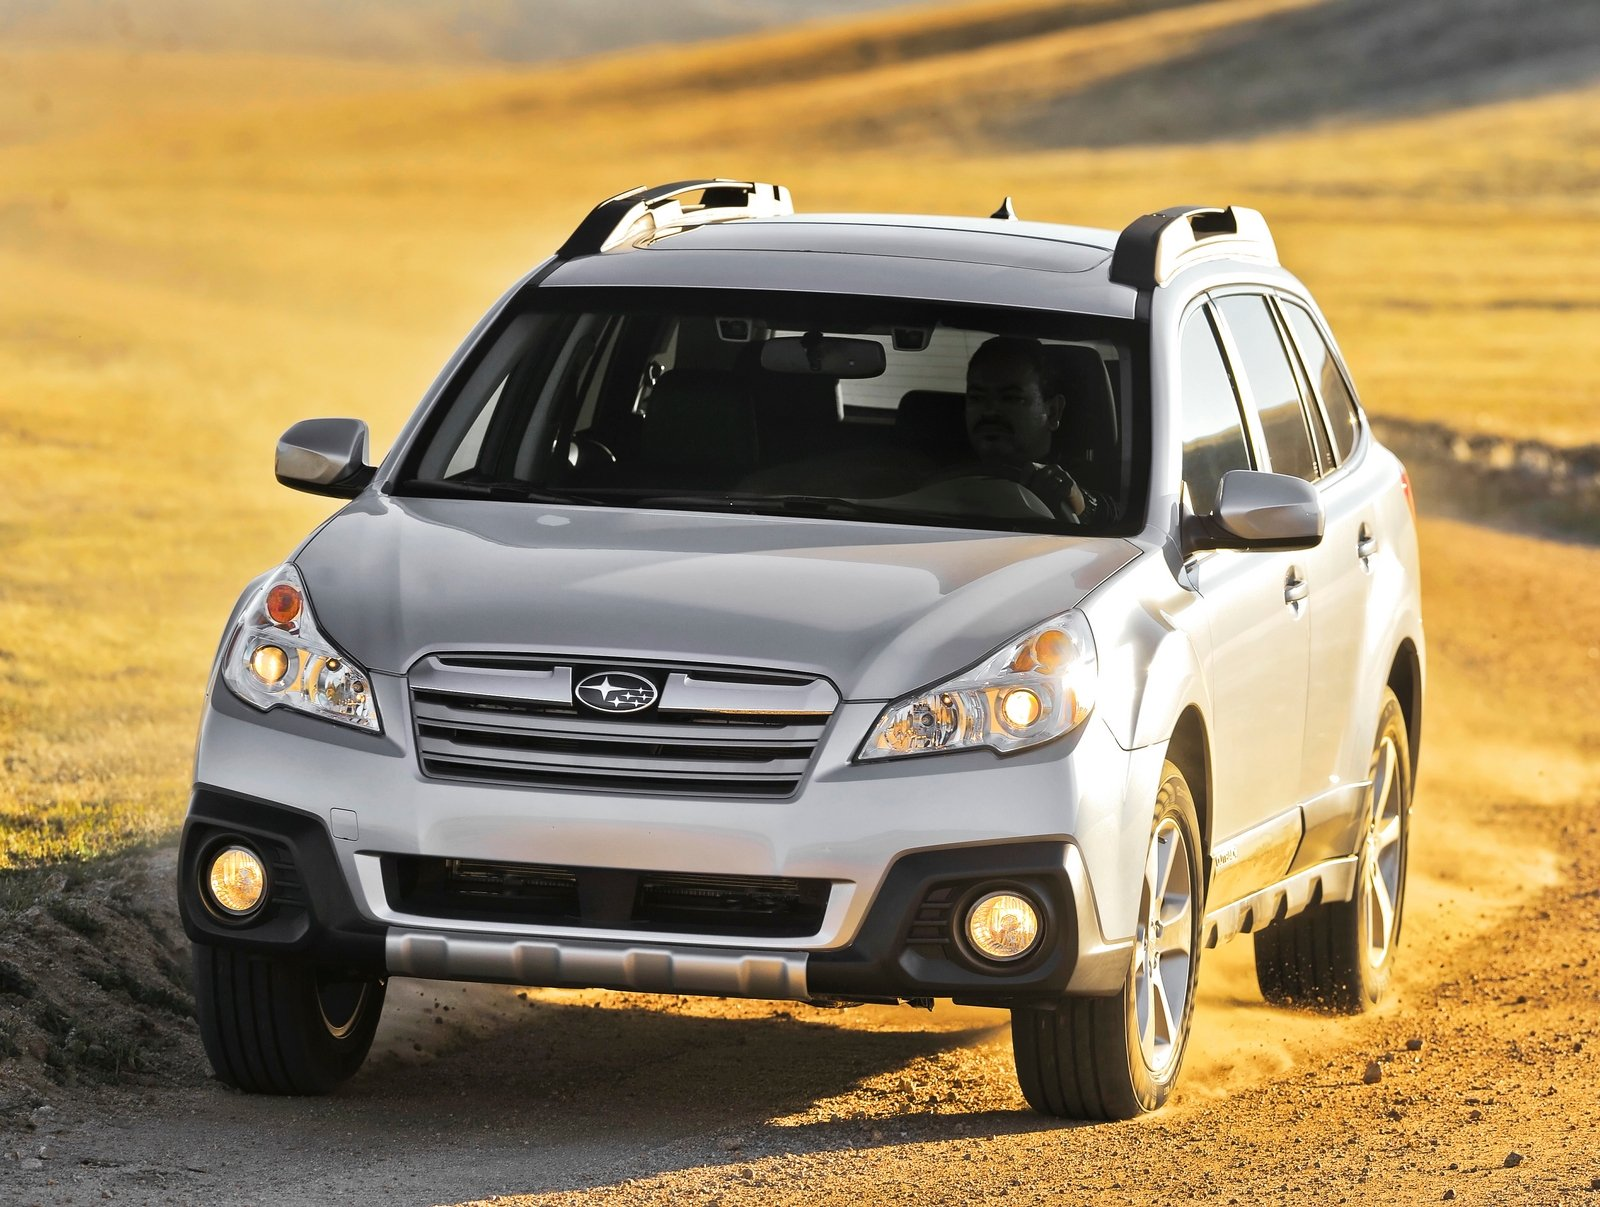 2013 subaru outback picture 546749 car review top speed. Black Bedroom Furniture Sets. Home Design Ideas